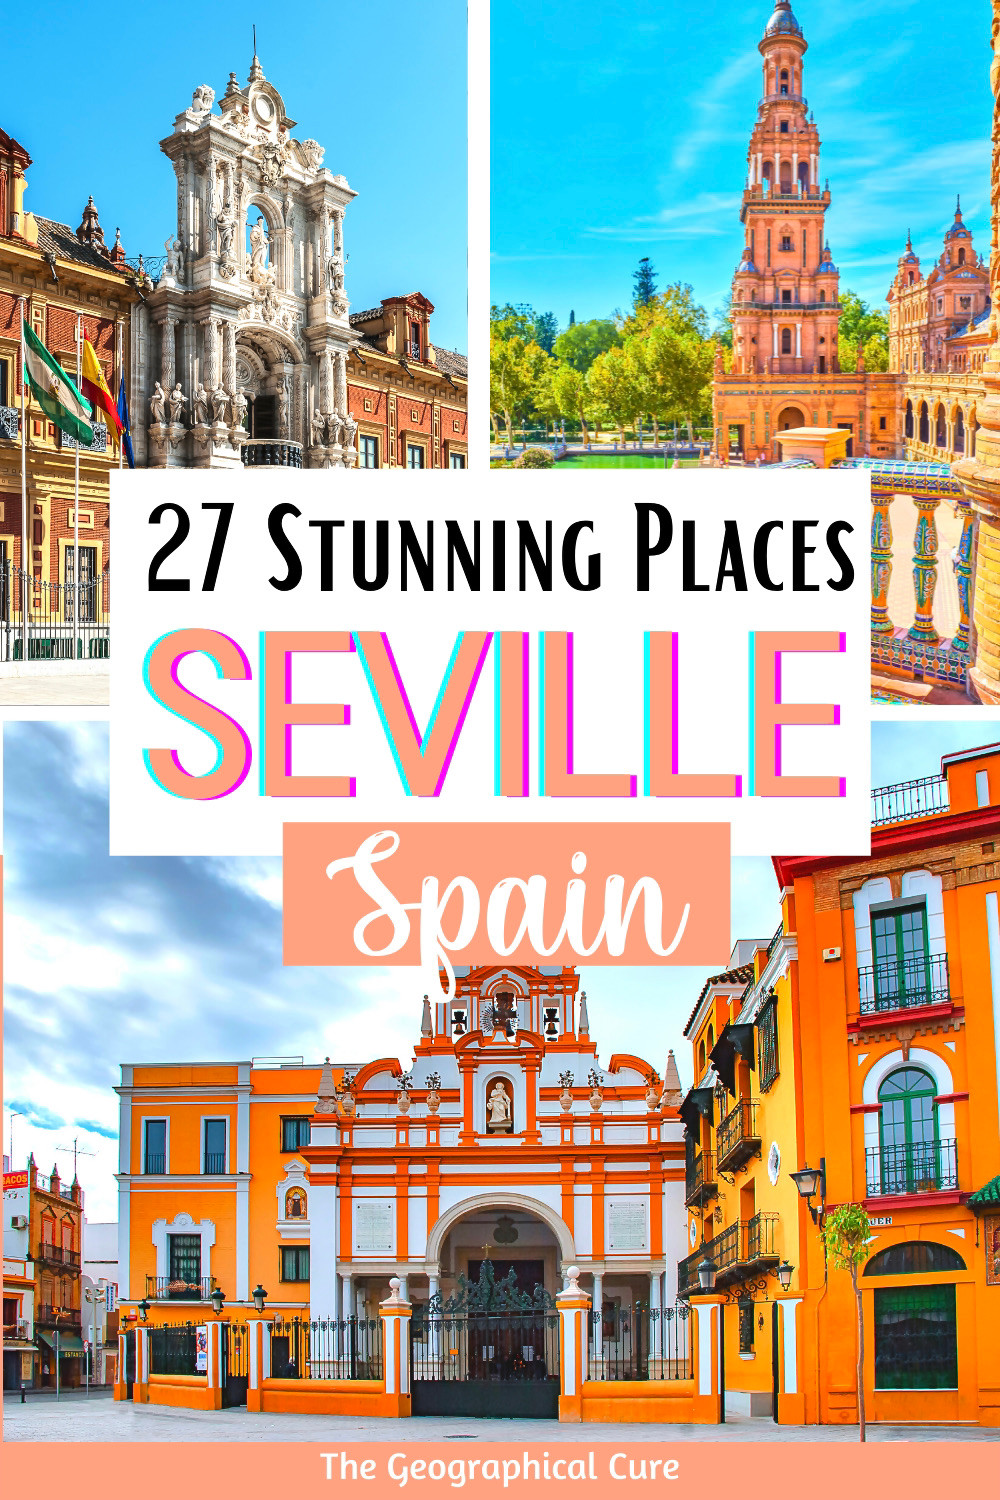 Guide To The Best Attractions And Landmarks In Seville Spain 27 Best Things To Do And See